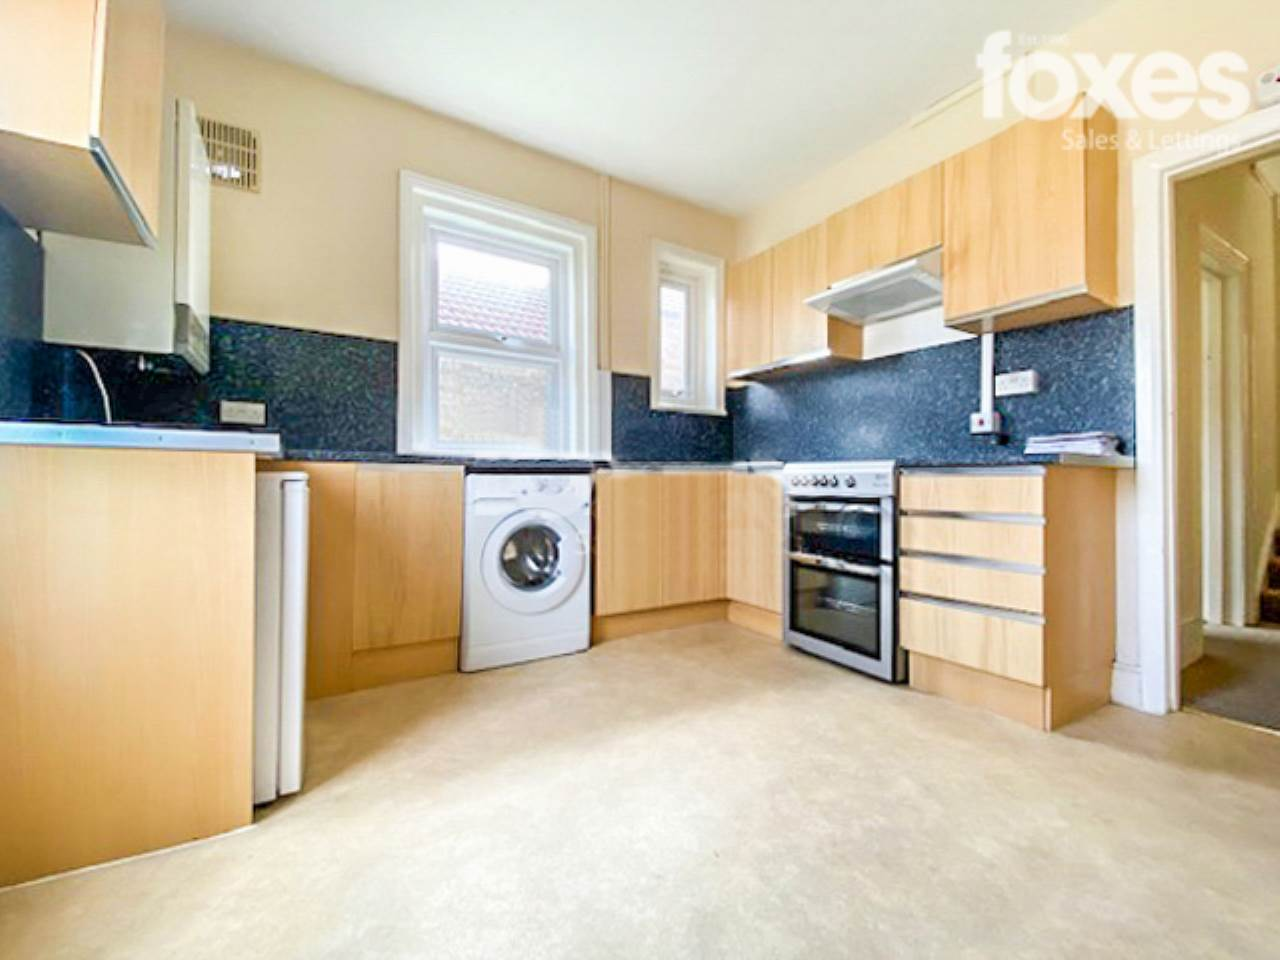 2 bed flat to rent in Poole Road, Branksome 0